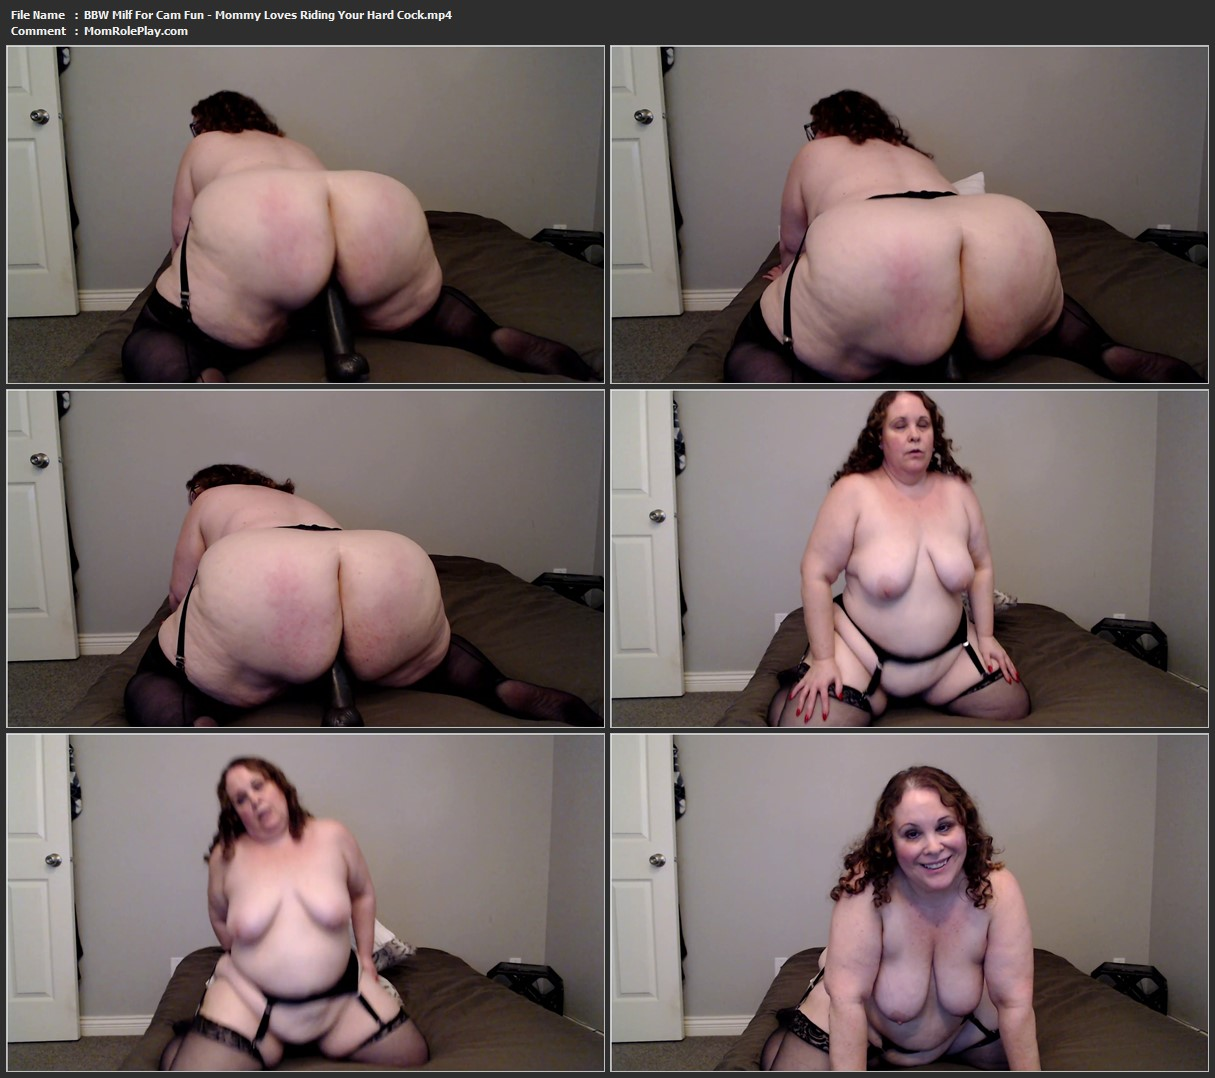 BBW Milf For Cam Fun - Mommy Loves Riding Your Hard Cock